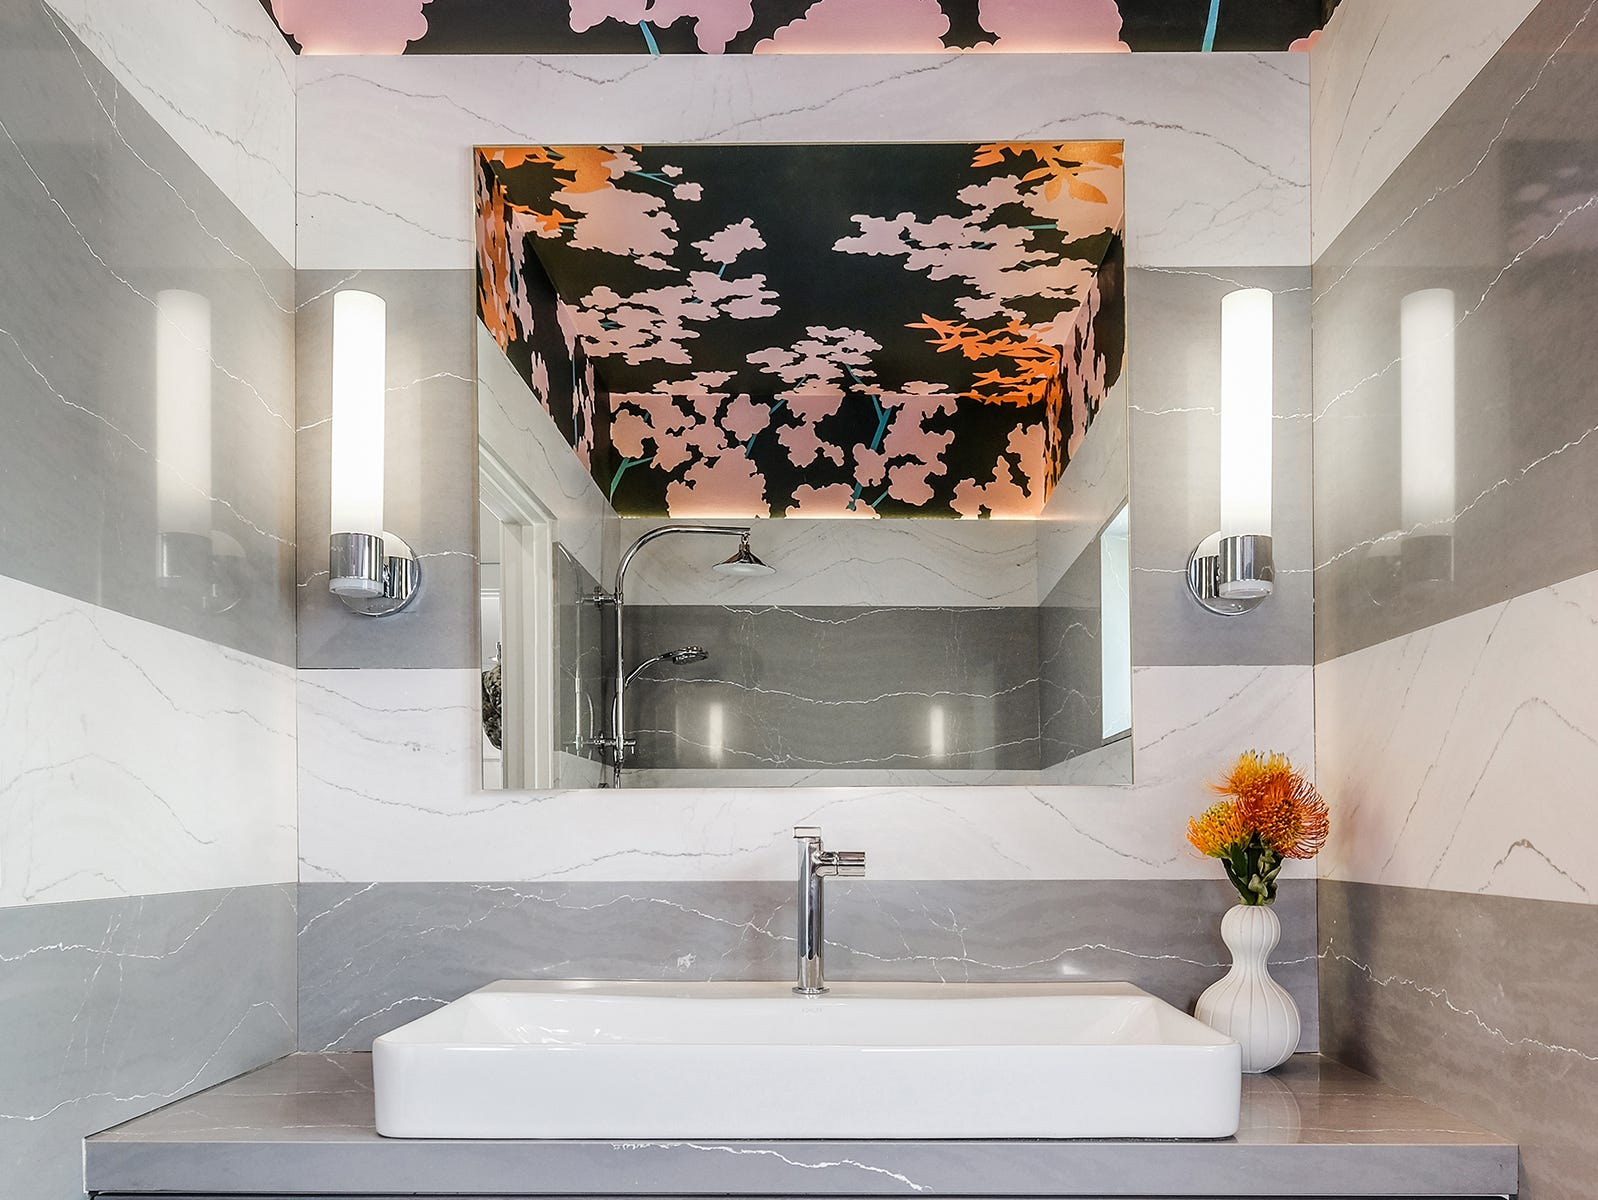 : A modern suspended vanity blends with gray and white stripes of stone, but it's the floral on a dark ground by Stephan Blachowski that pops on the ceiling.